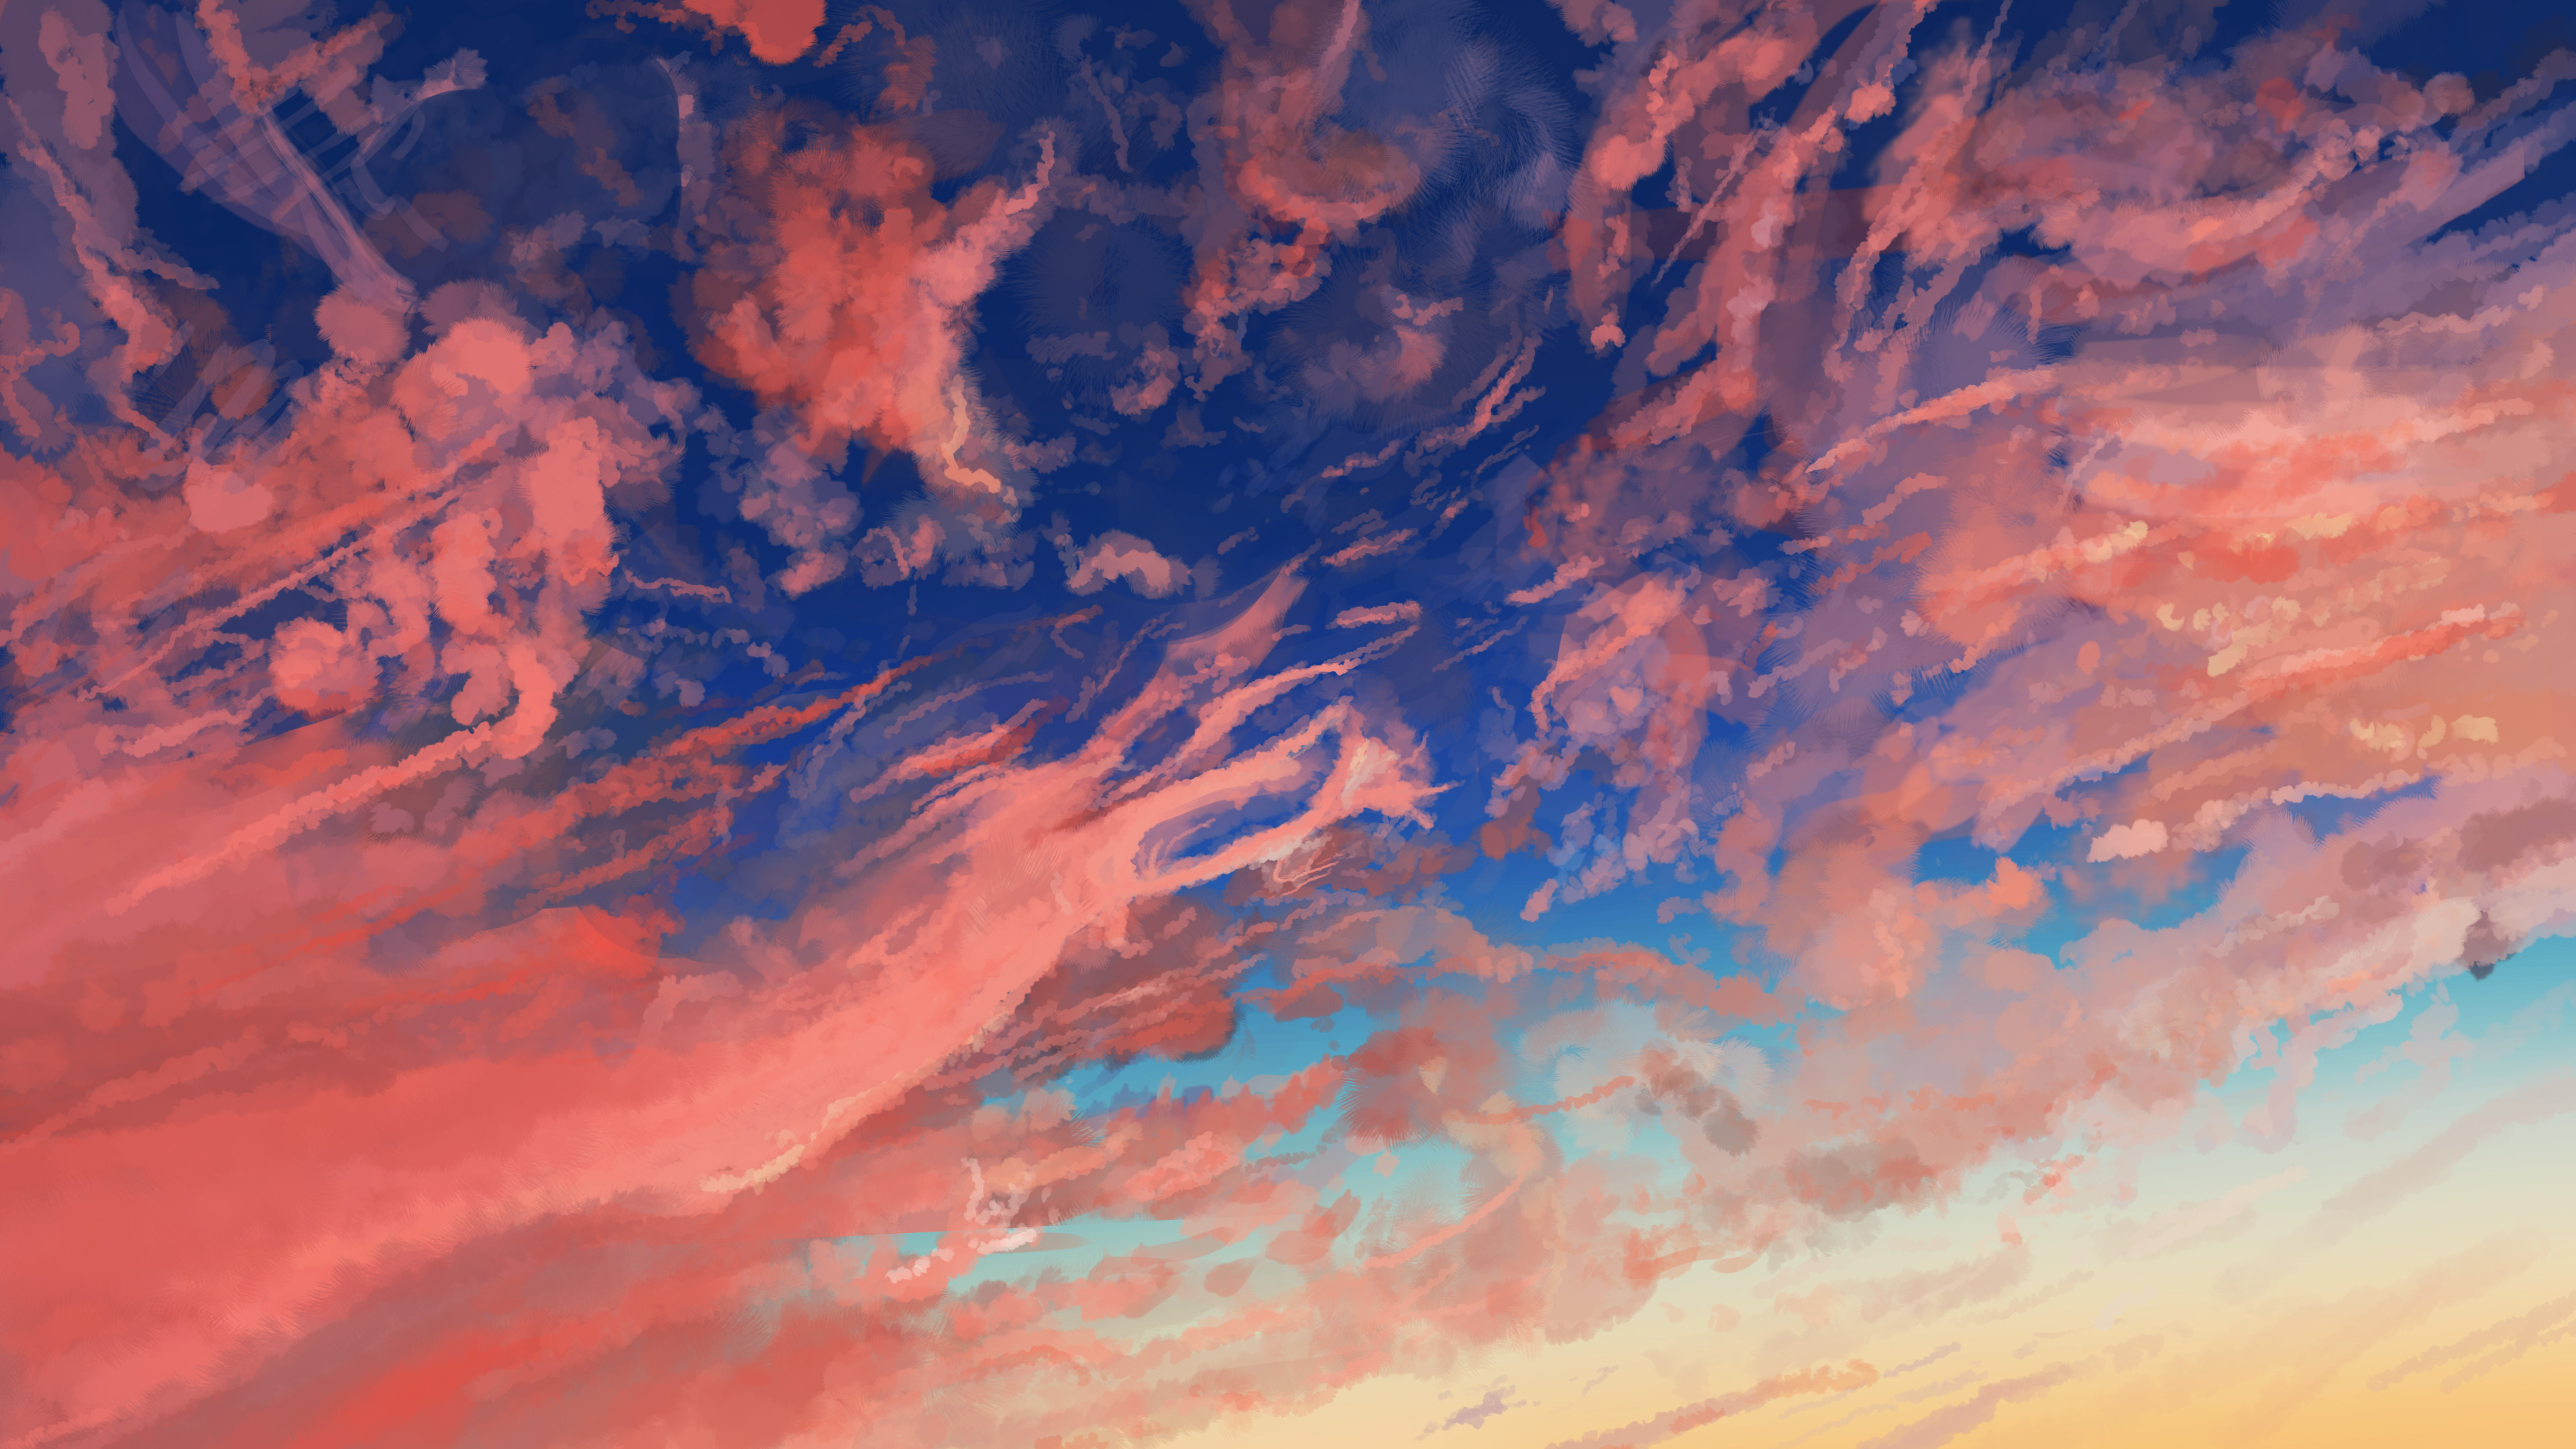 Wallpaper 4k Cloud Sky Anime 4k Wallpapers Anime Wallpapers Artist Wallpapers Artwork Wallpapers Cloud Wallpapers Digital Art Wallpapers Hd Wallpapers Sky Wallpapers